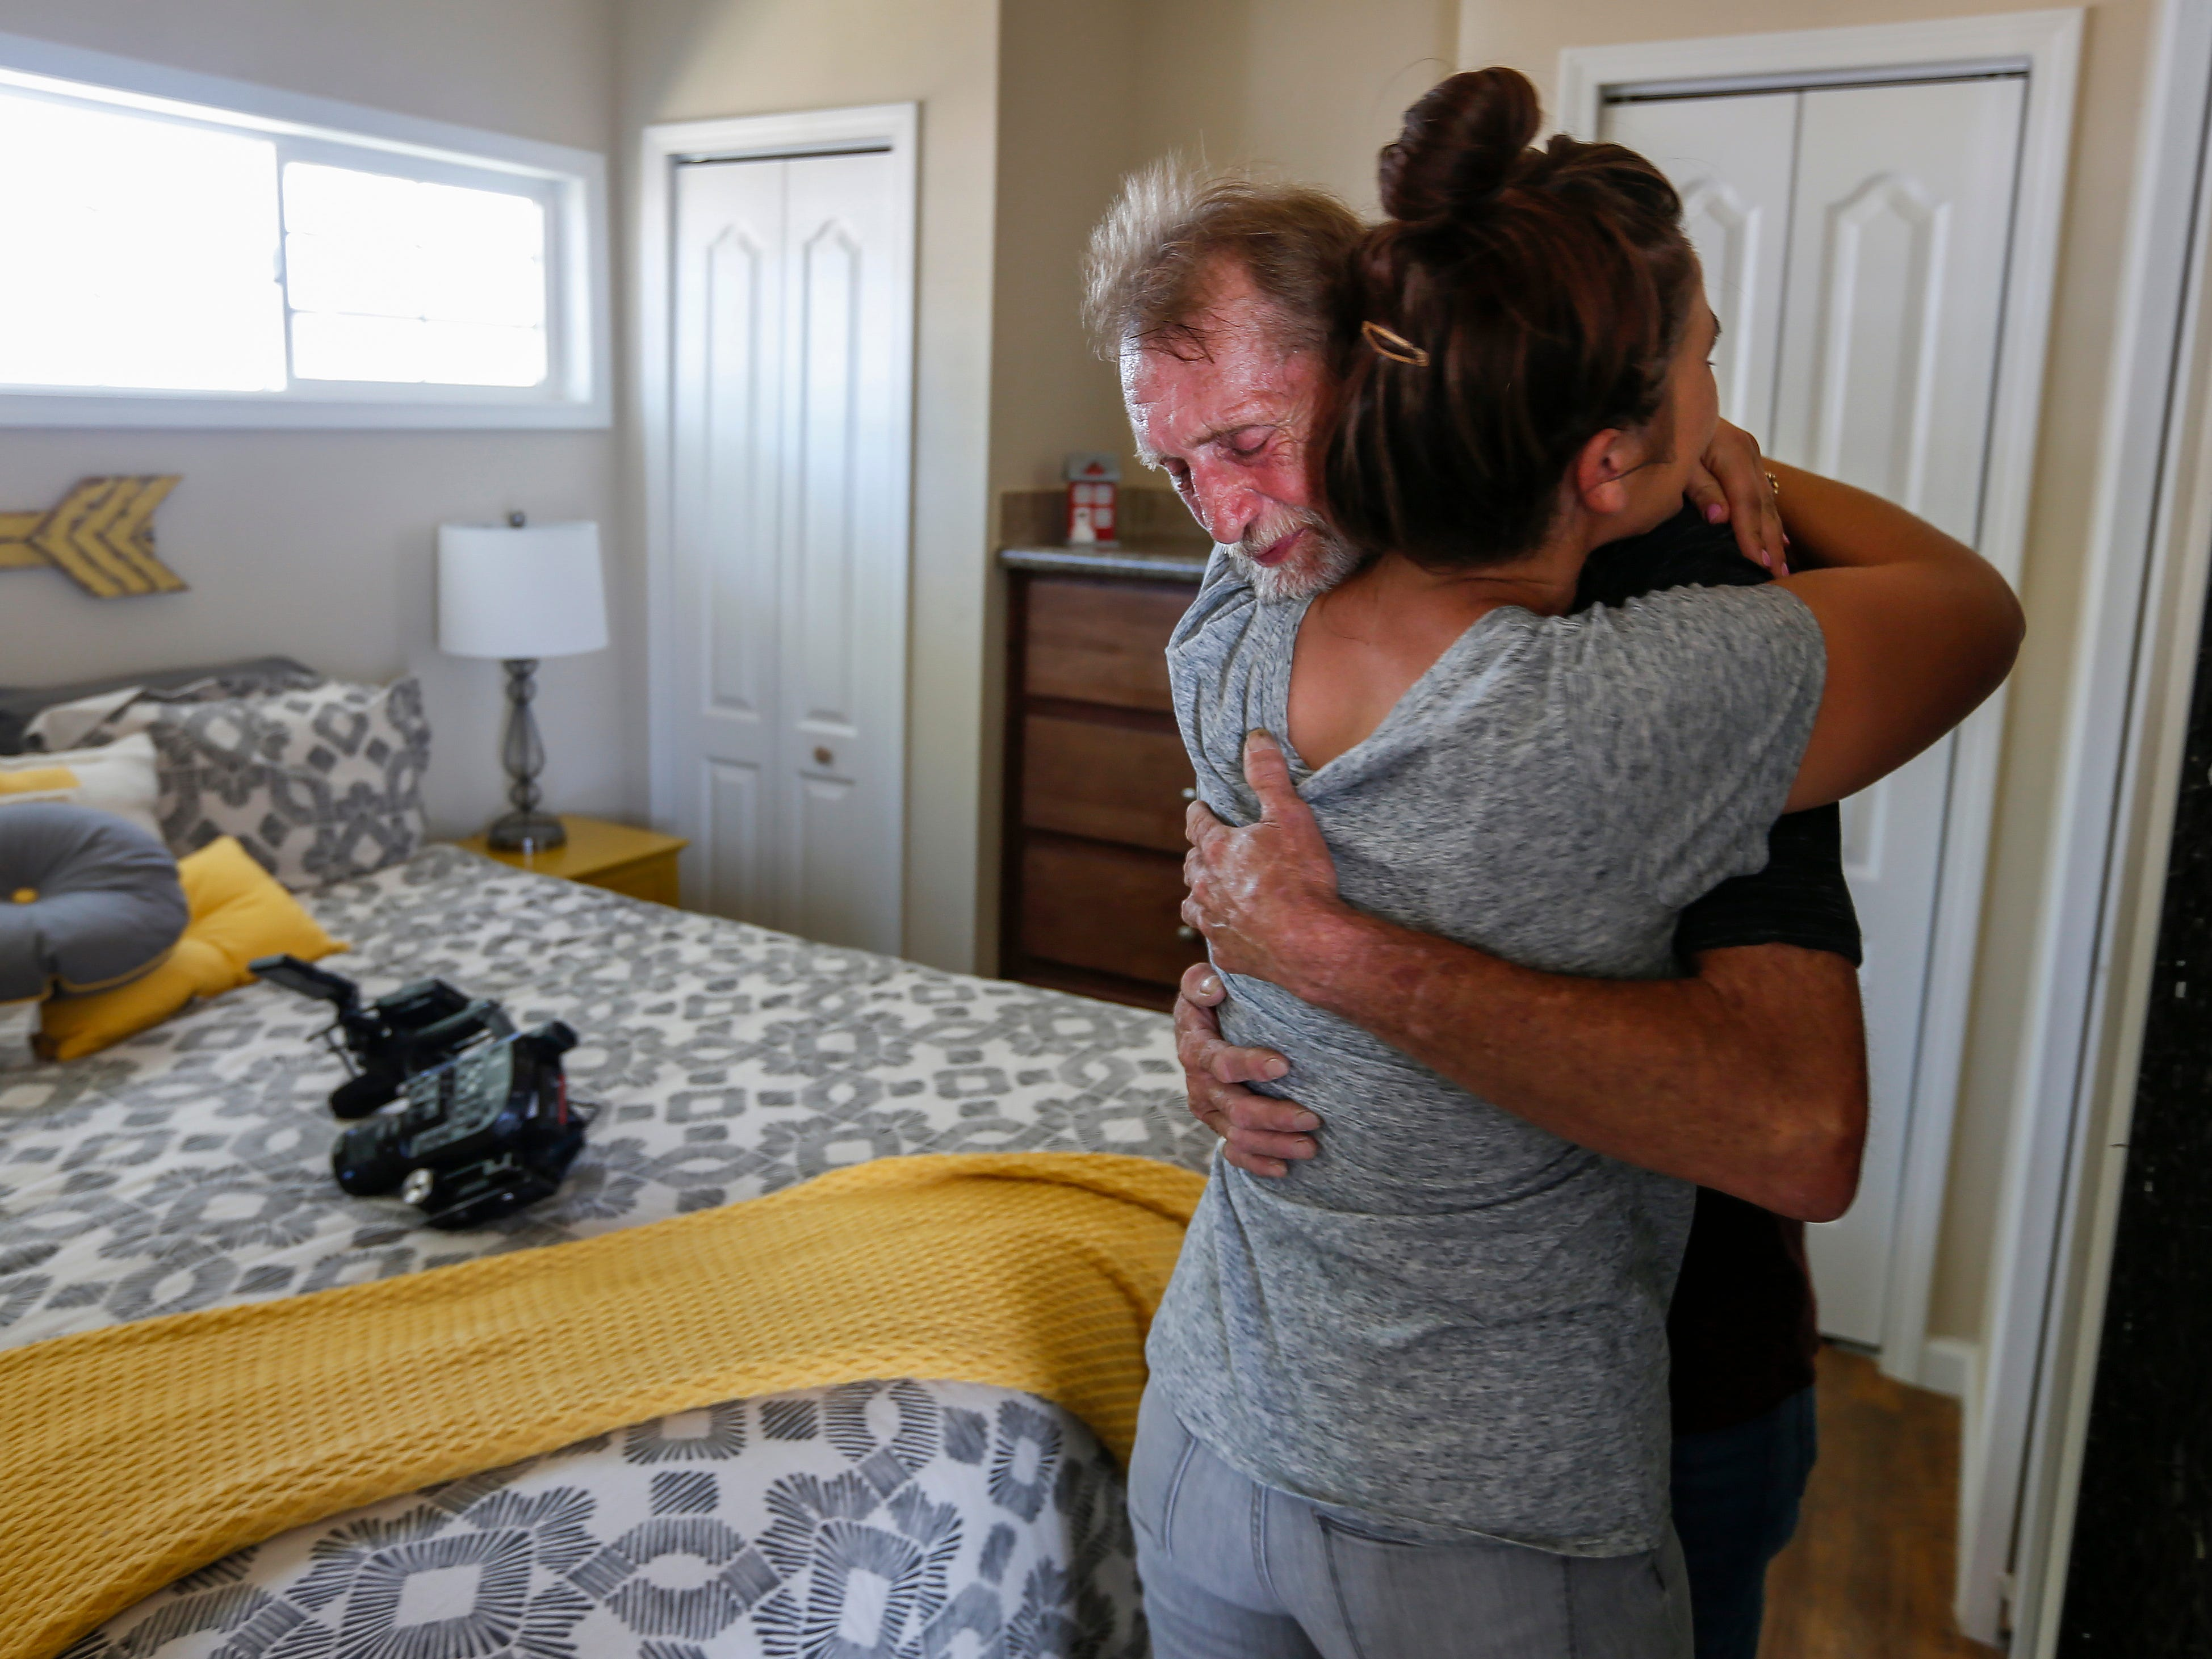 Tommy Yarberry hugs Ashlyn Klingensmith in the bedroom of his new home during the Eden Village Grand Opening Ceremony on Tuesday, Aug. 28, 2018. Yarberry is the first resident to move into the tiny home community.